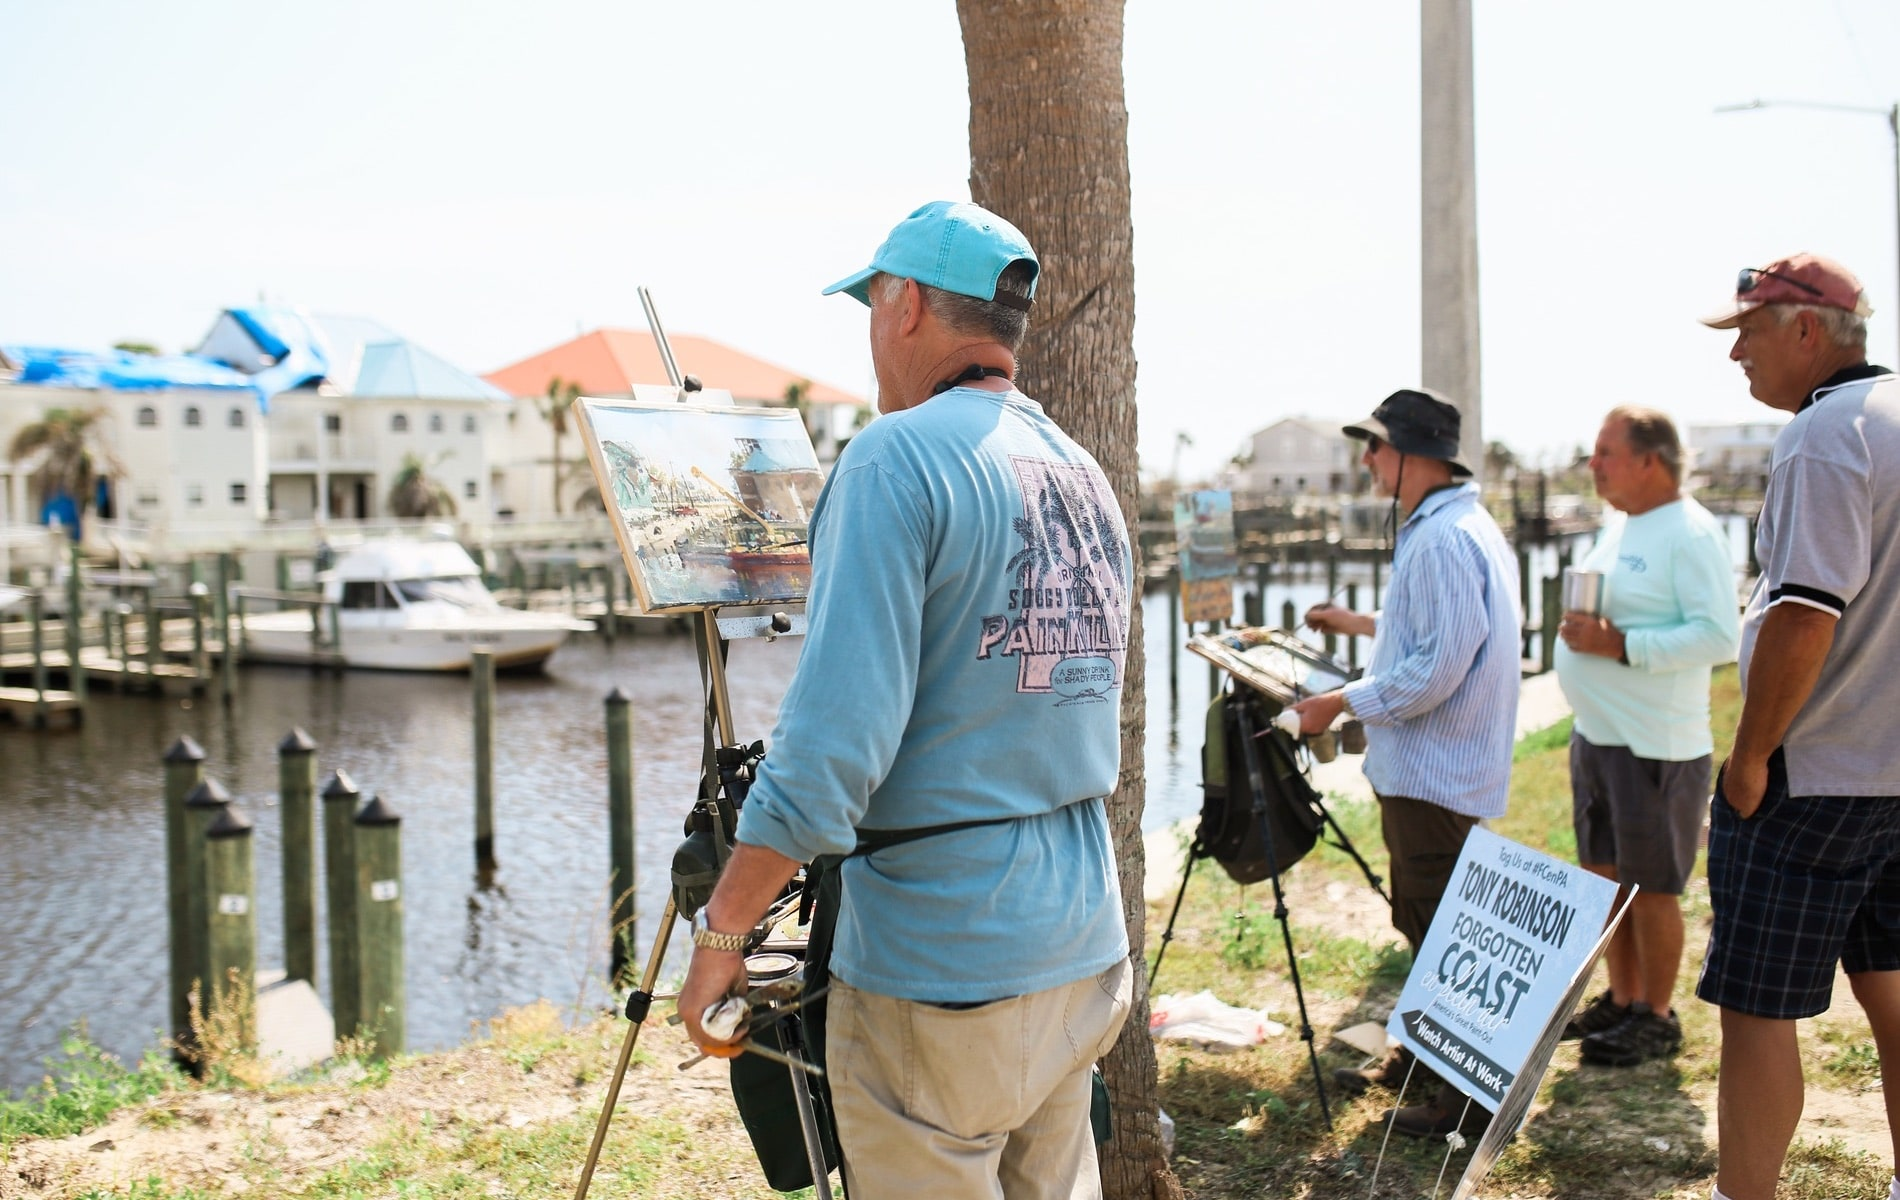 Stewart White of Baltimore and Tony Robinson of Wexford, Ireland, paint the scene at the Mexico Beach Canal.